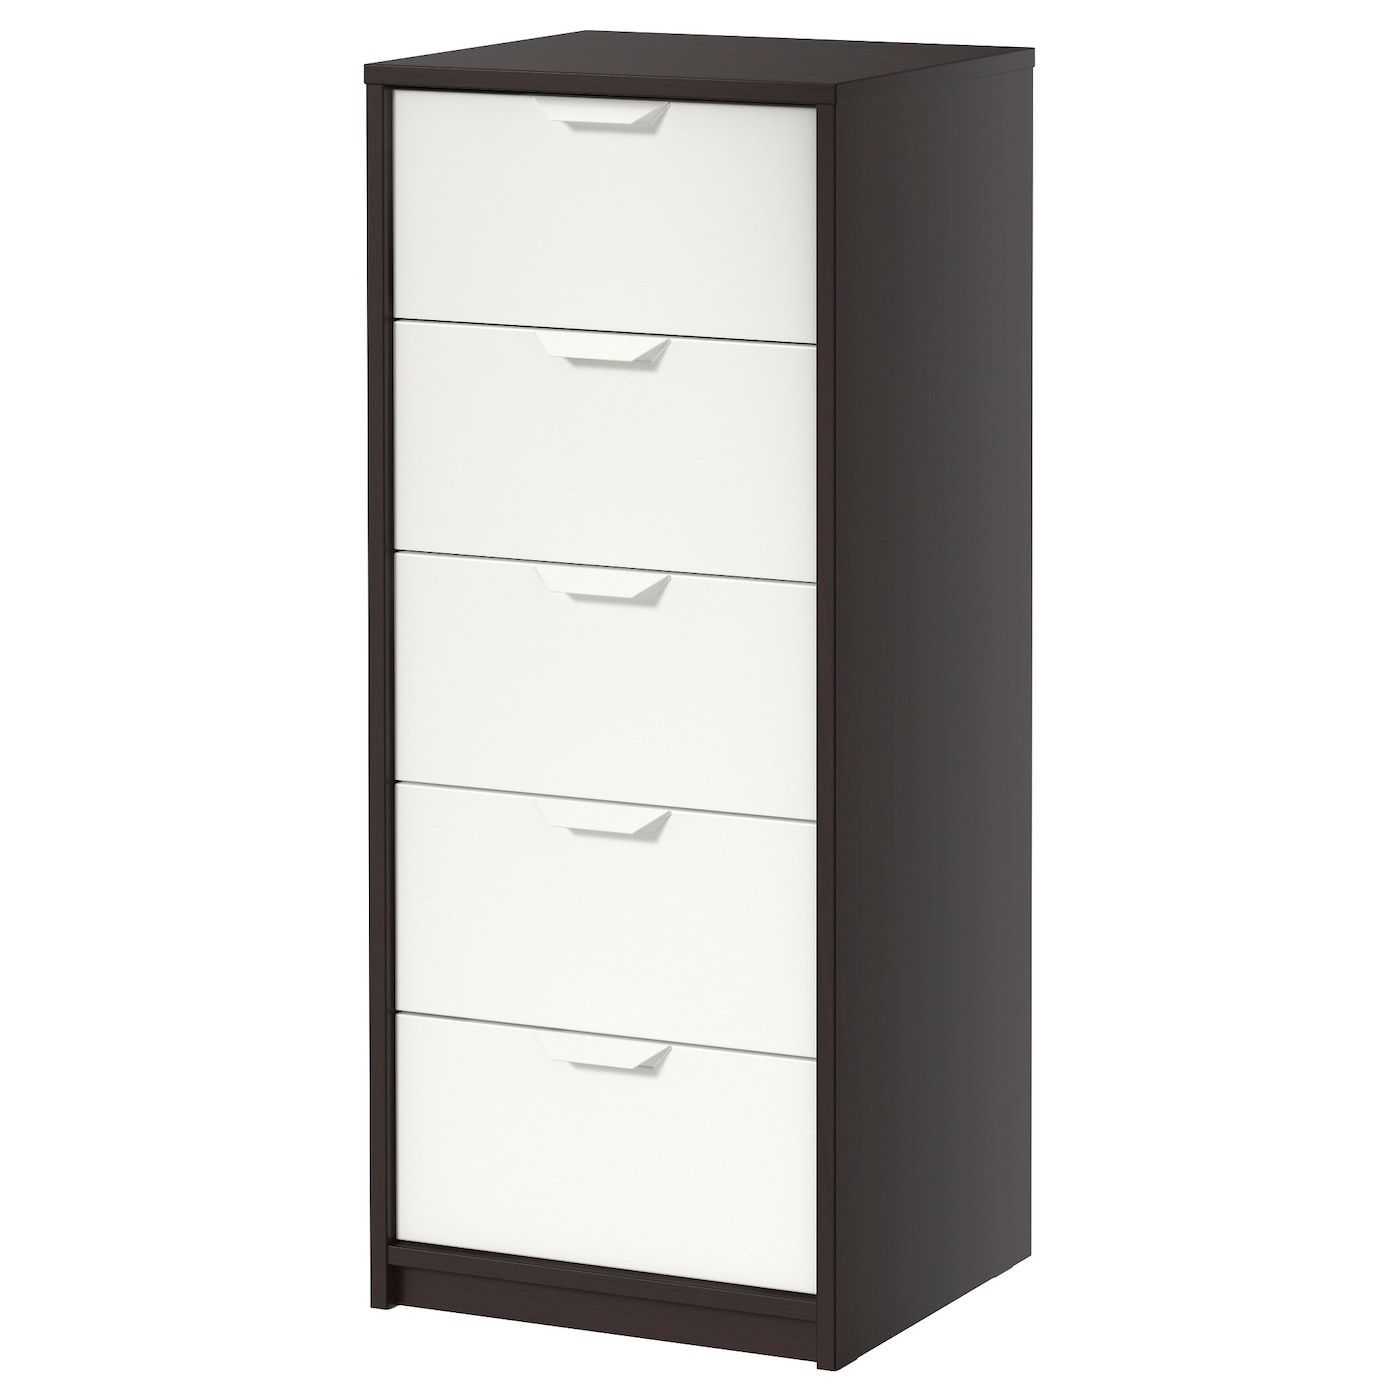 Askvoll commode 5 tiroirs brun noir blanc 45x109 cm ikea for Ikea blanc commode